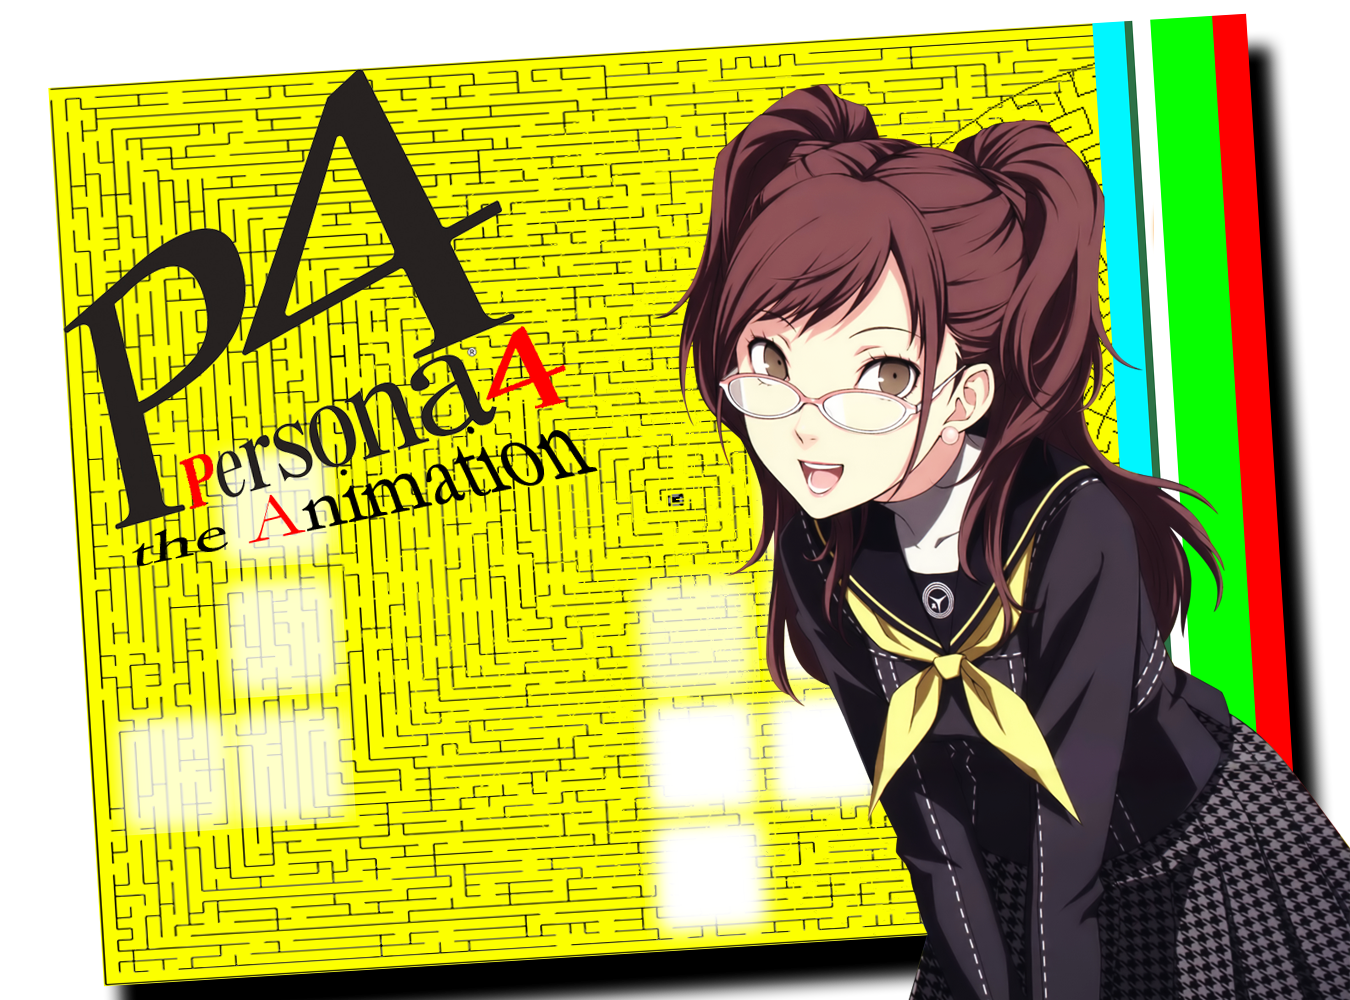 Persona 4 Anime Characters : Persona the animation characters deluxe by crymaster on